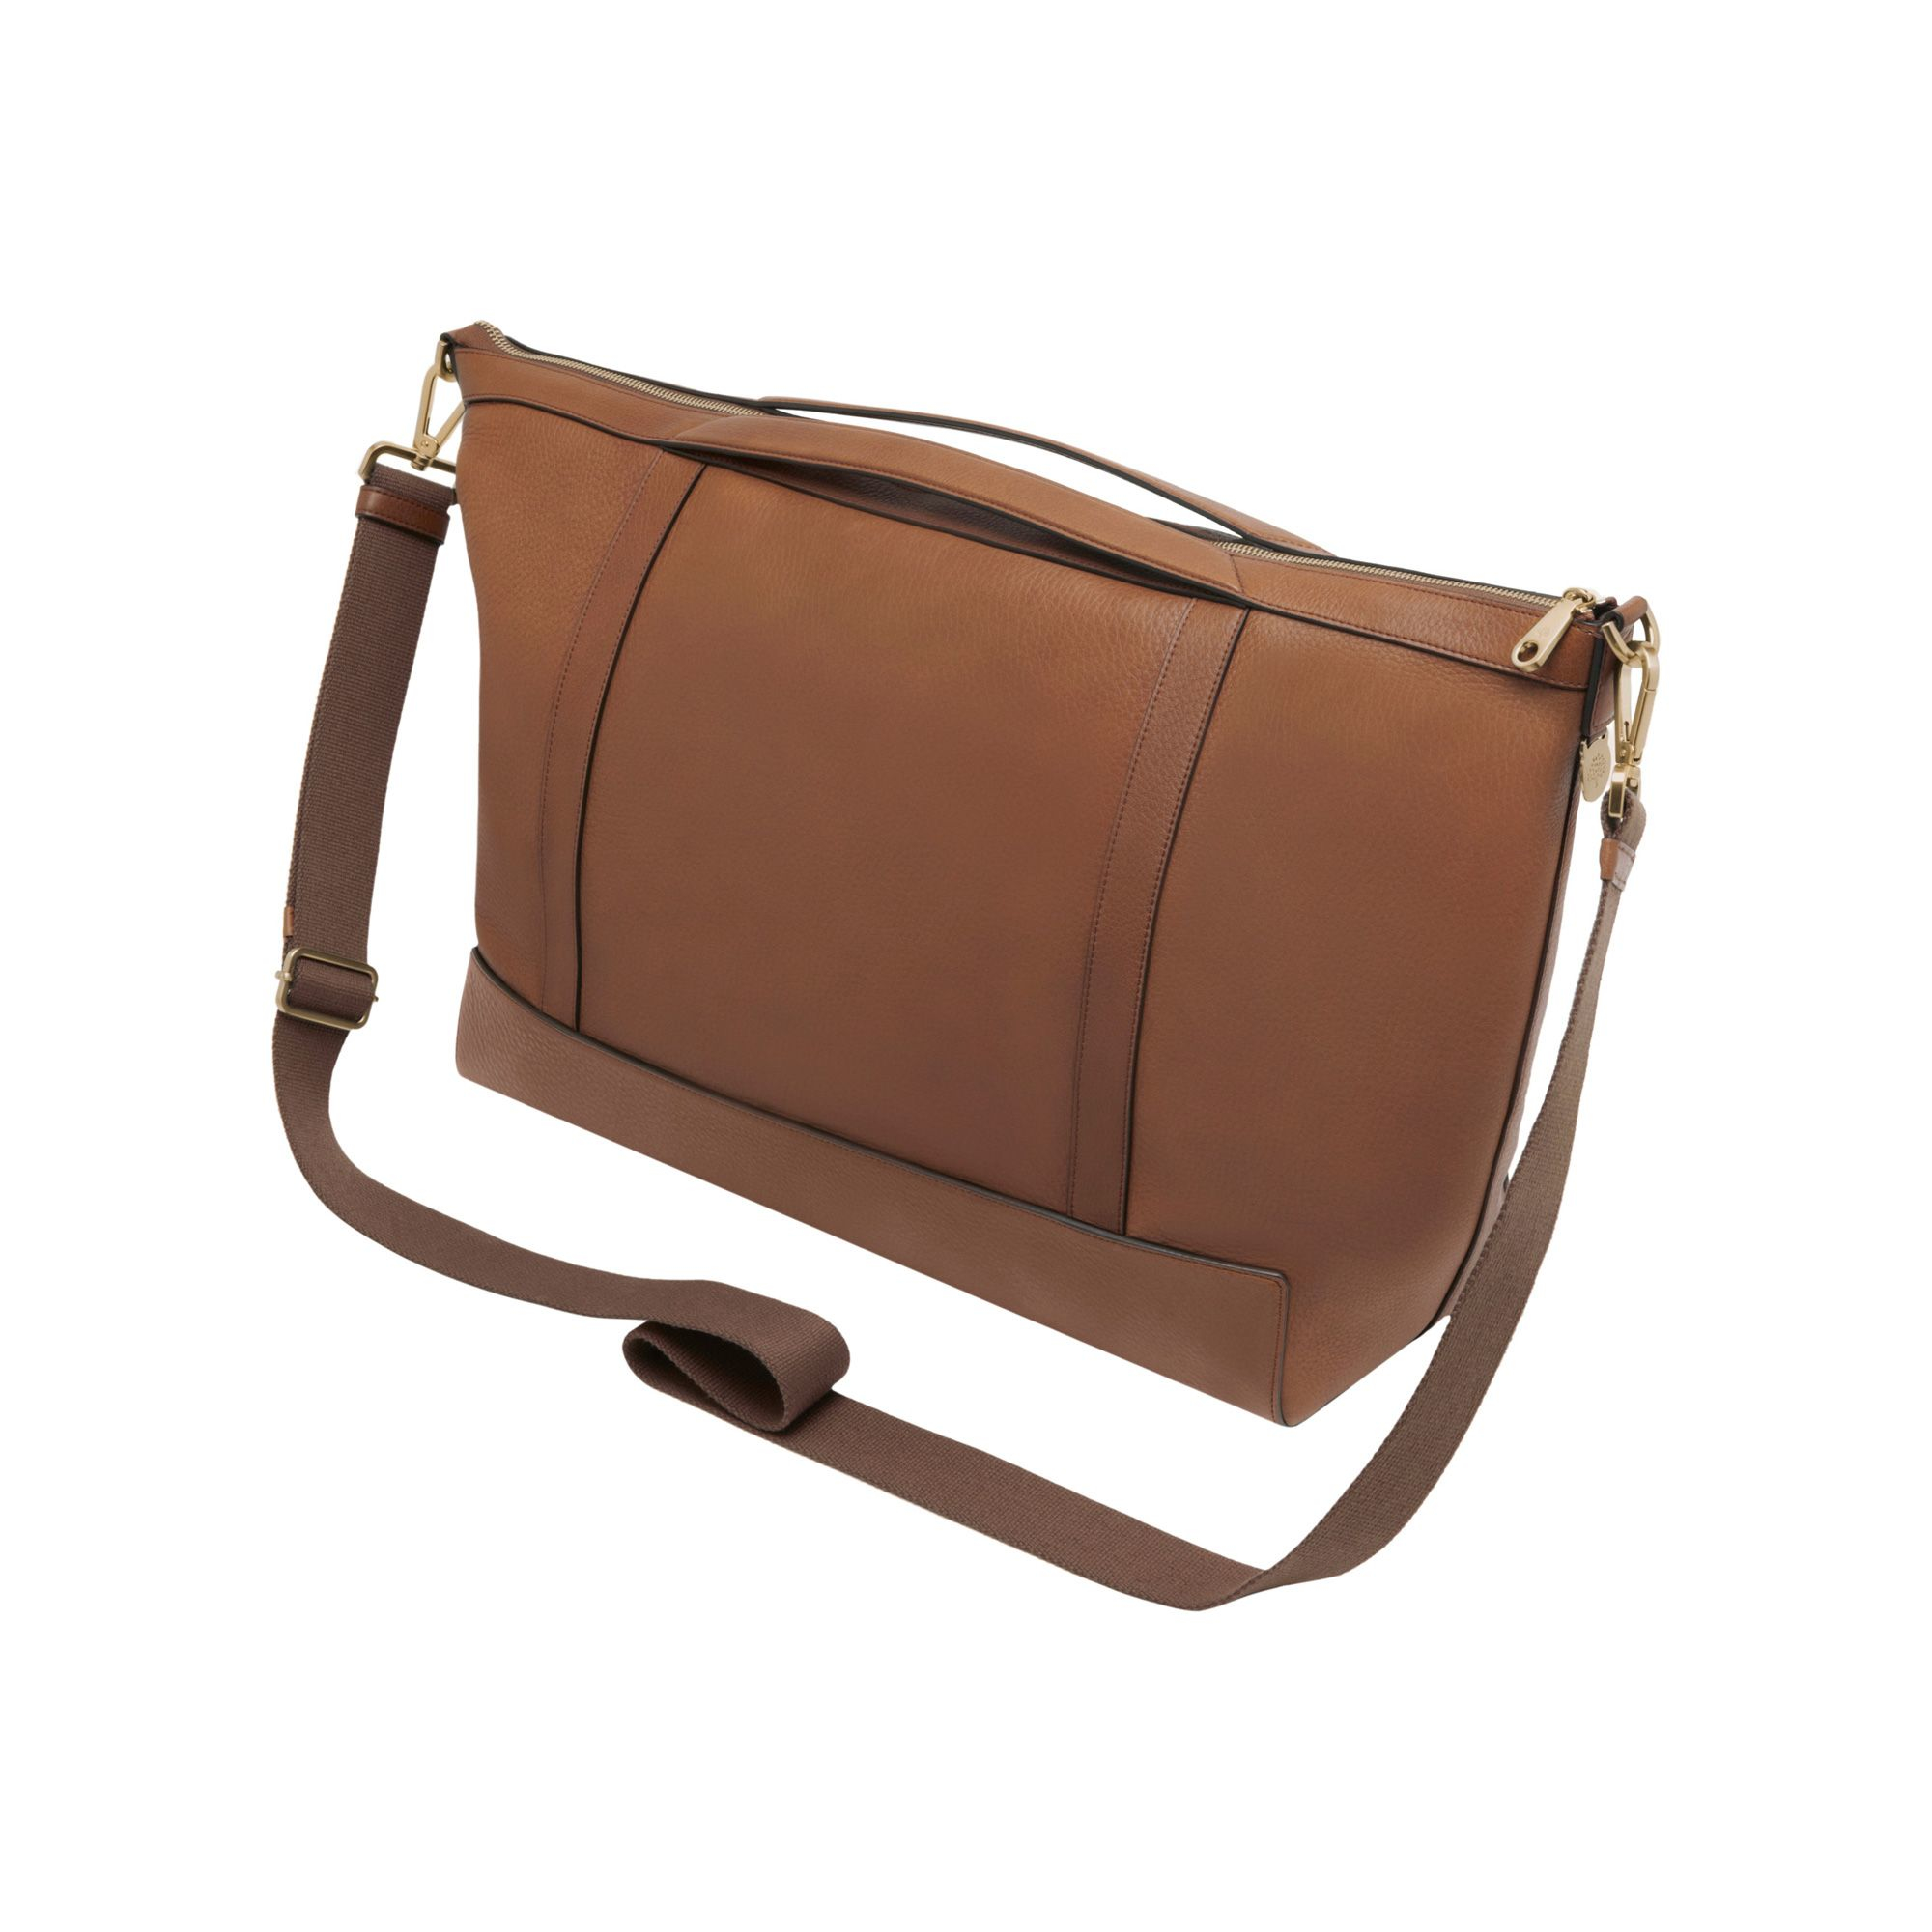 fde87fa8fa ... discount lyst mulberry multitasker holdall in brown for men 19899 d3ce0